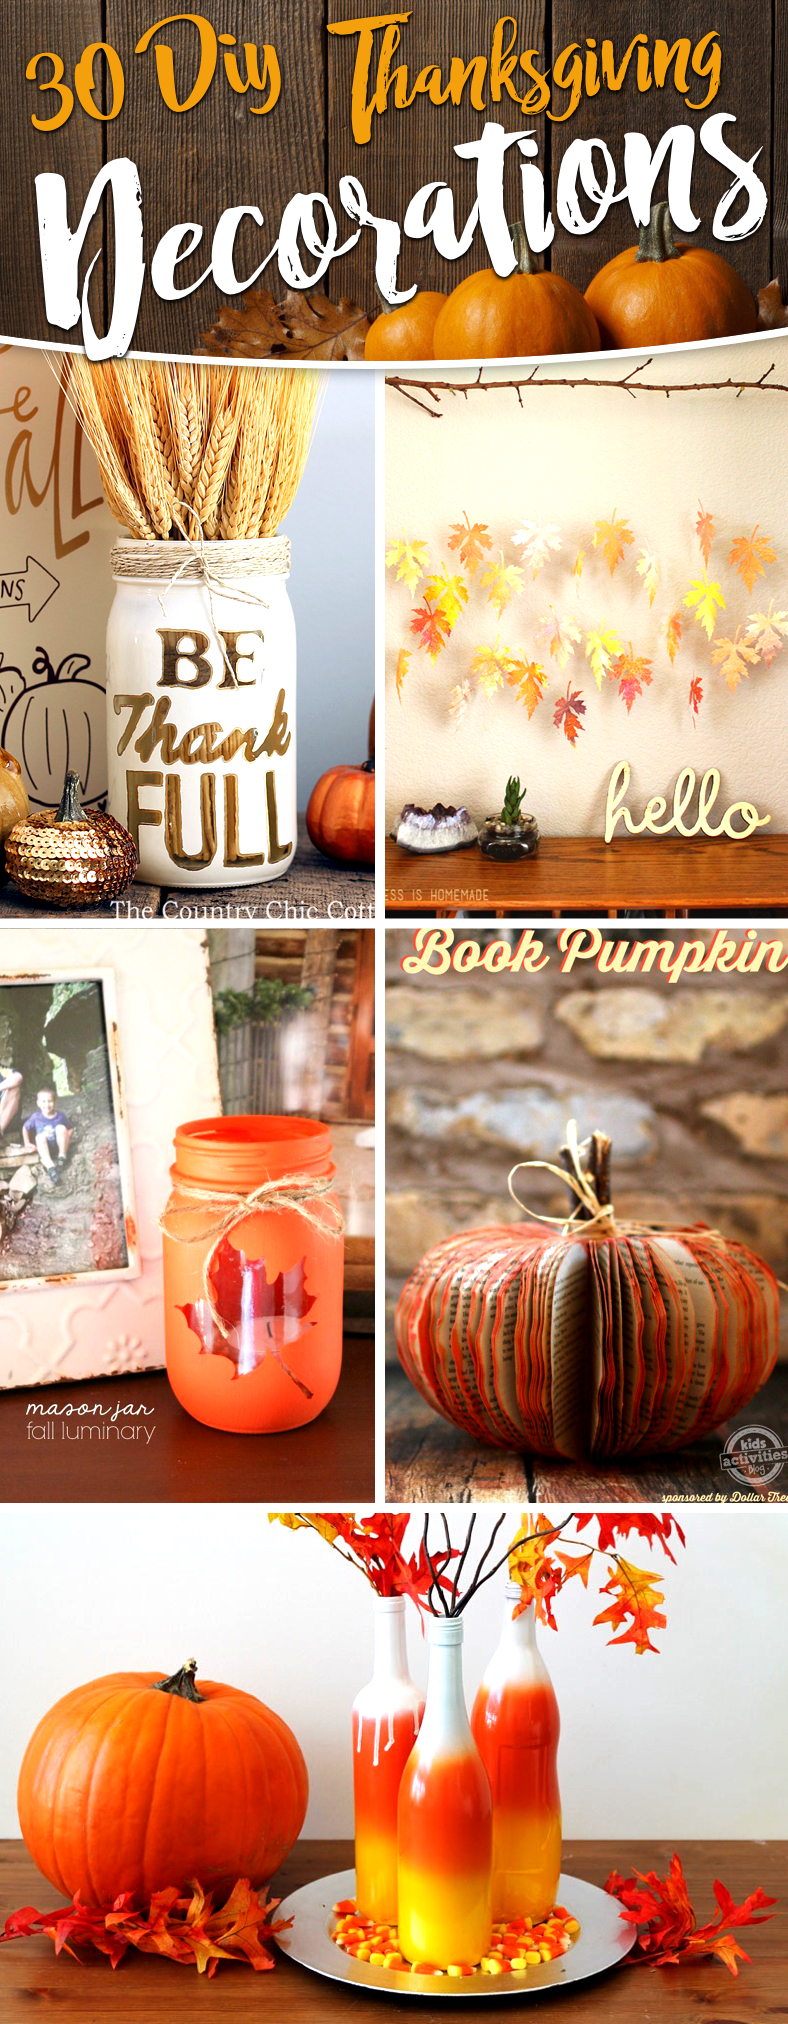 30 Diy Thanksgiving Decoration Ideas To Setup A Fall